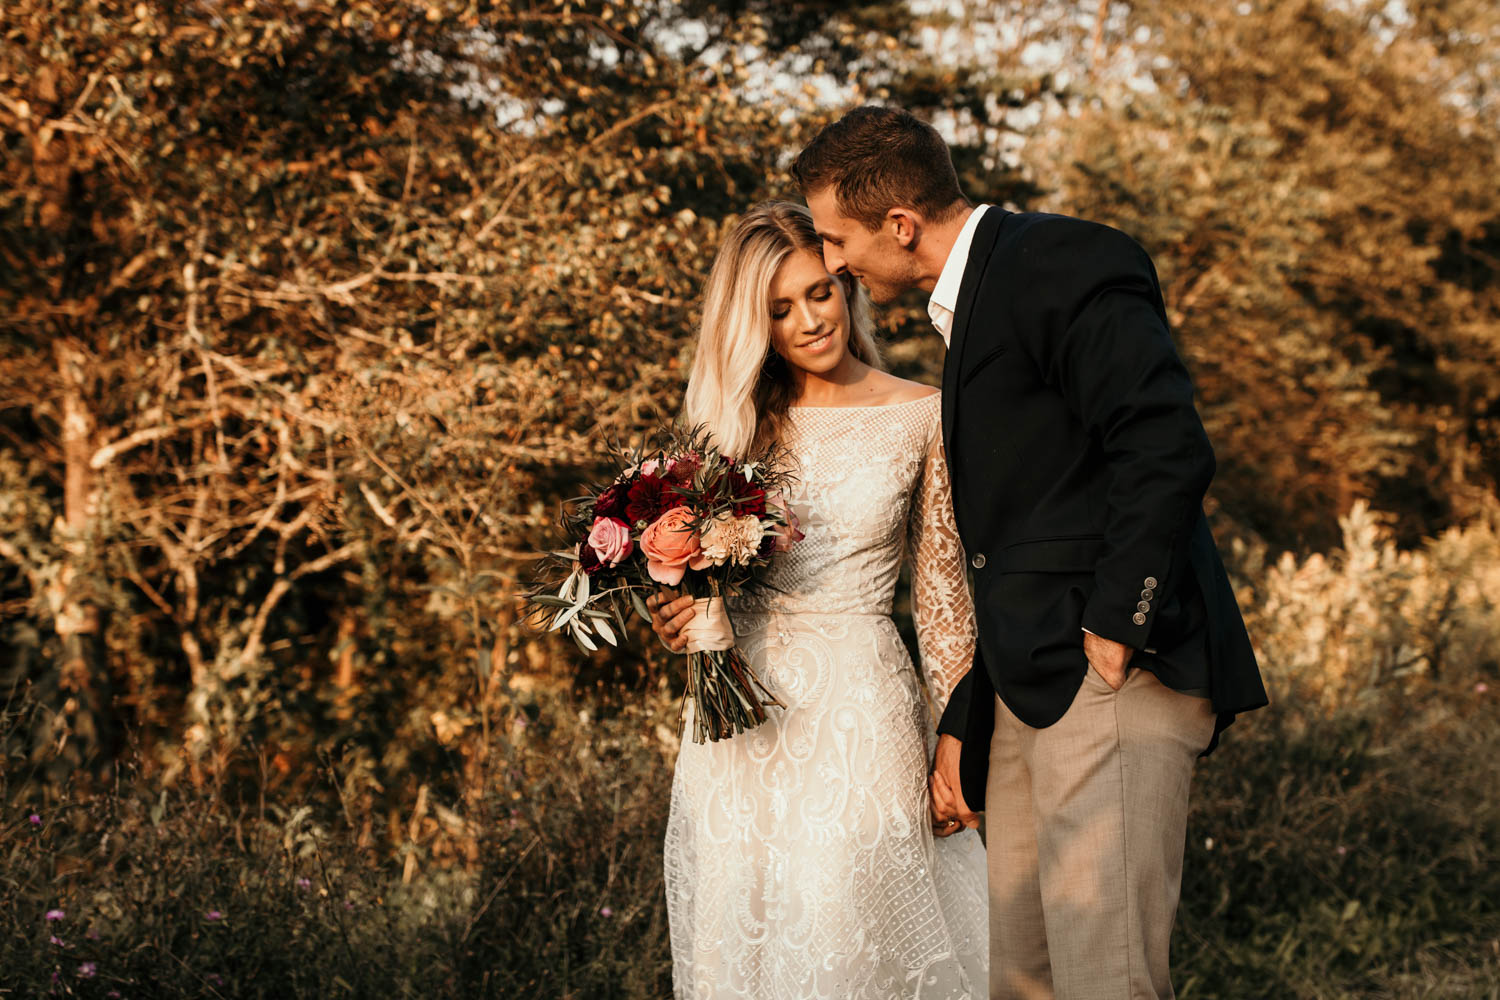 Weddings & Elopements - Please contact me for full package details.Packages starting at $1450.00